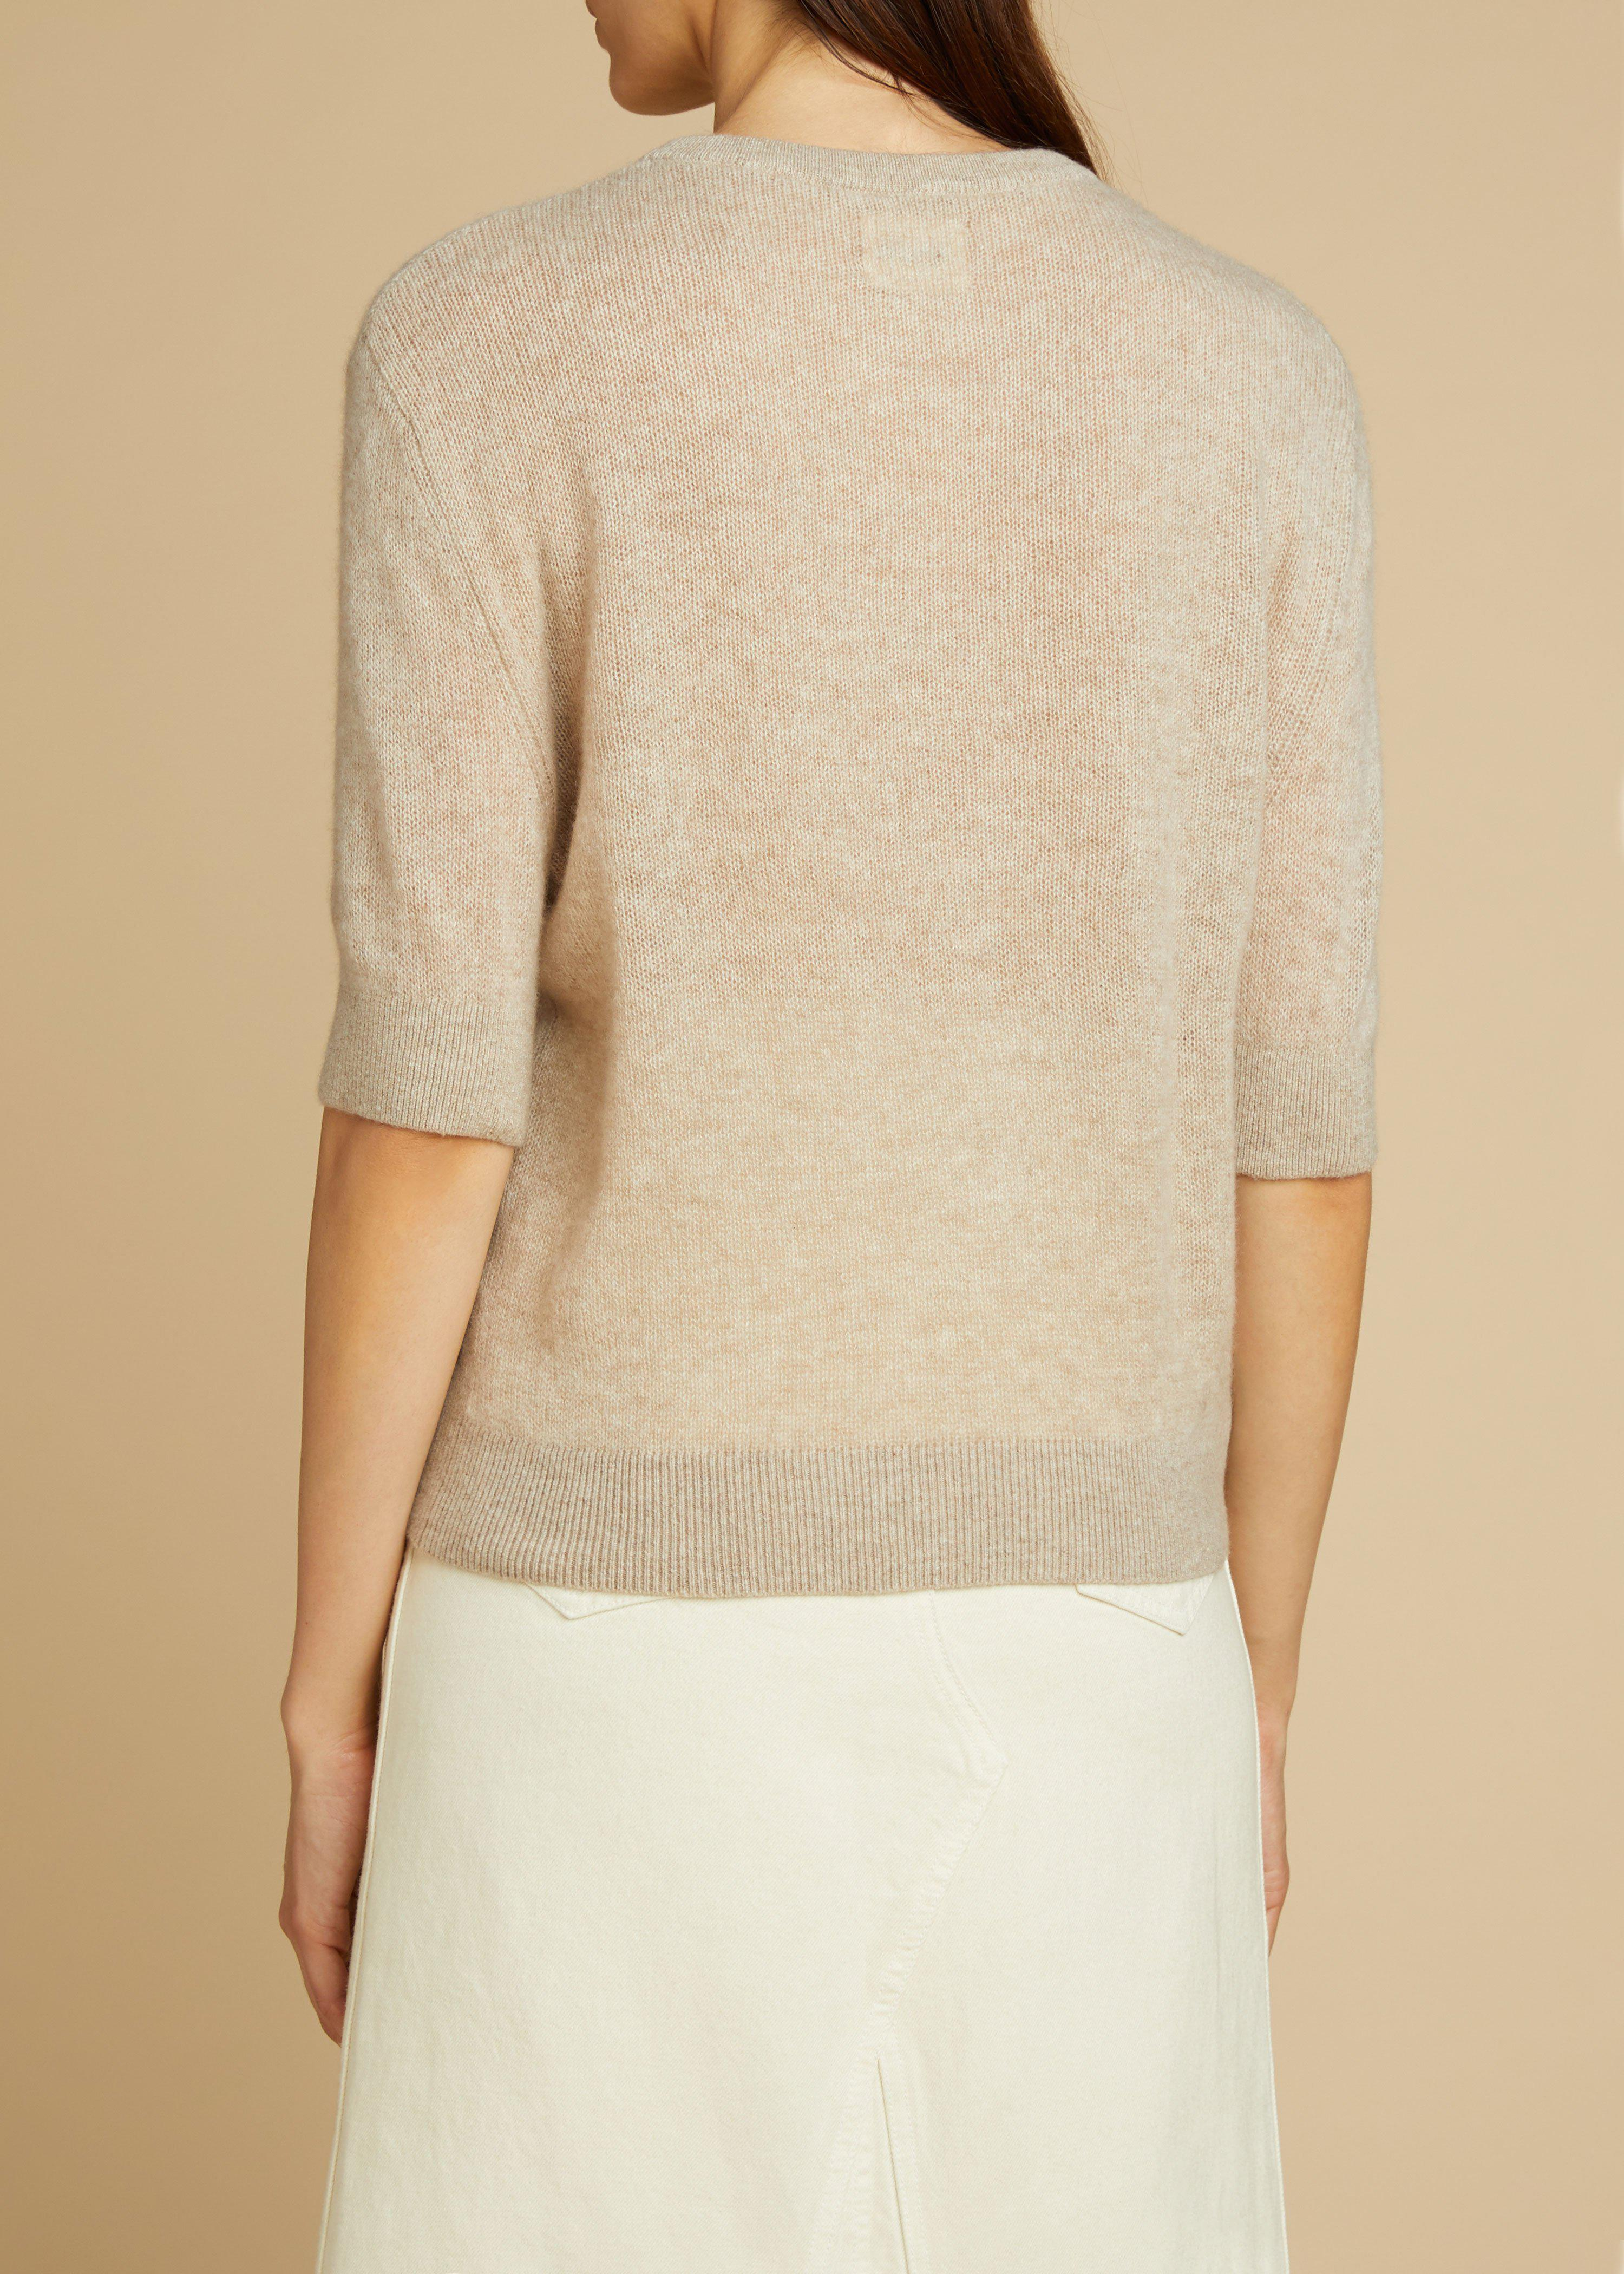 The Dianna Sweater in Powder 2